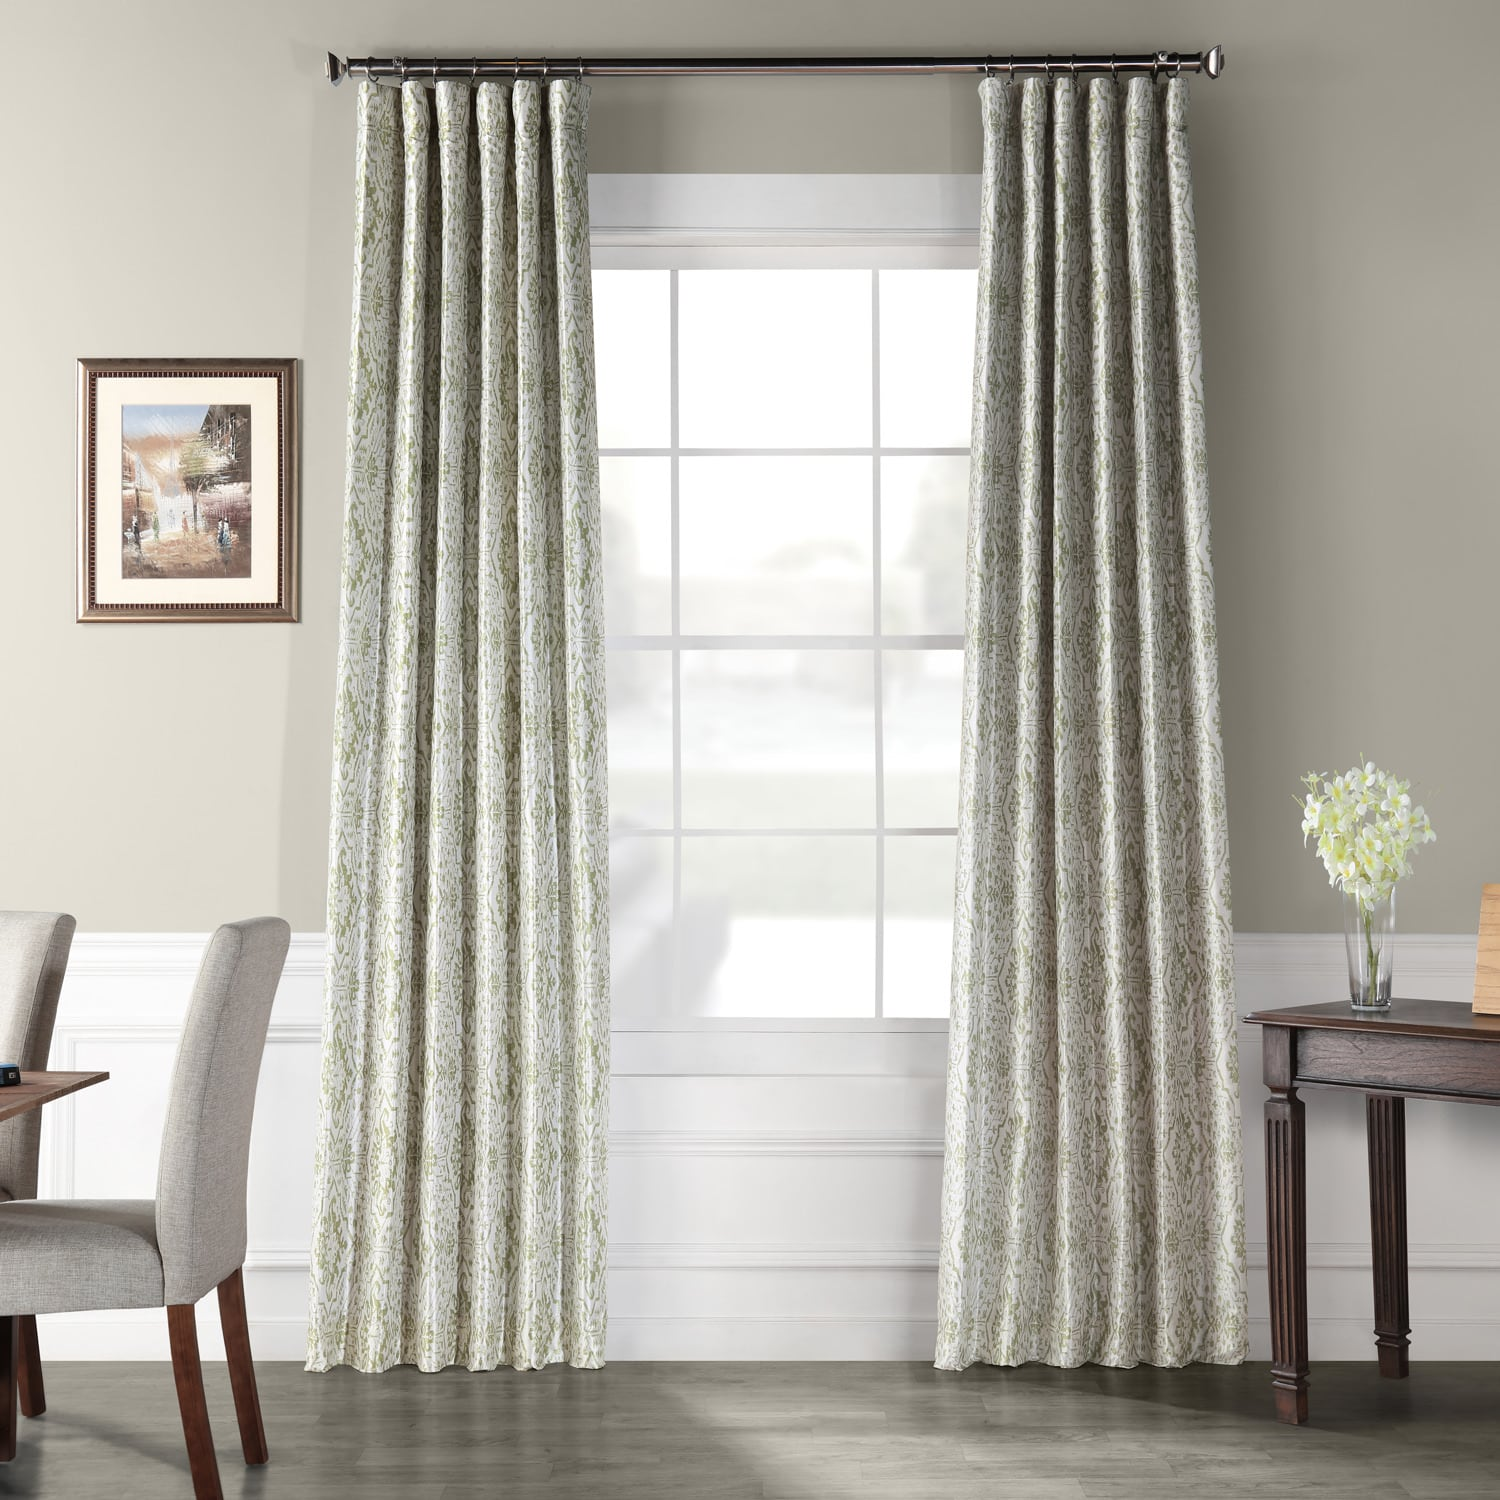 Tabriz Green Printed Faux Silk Taffeta Blackout Curtain